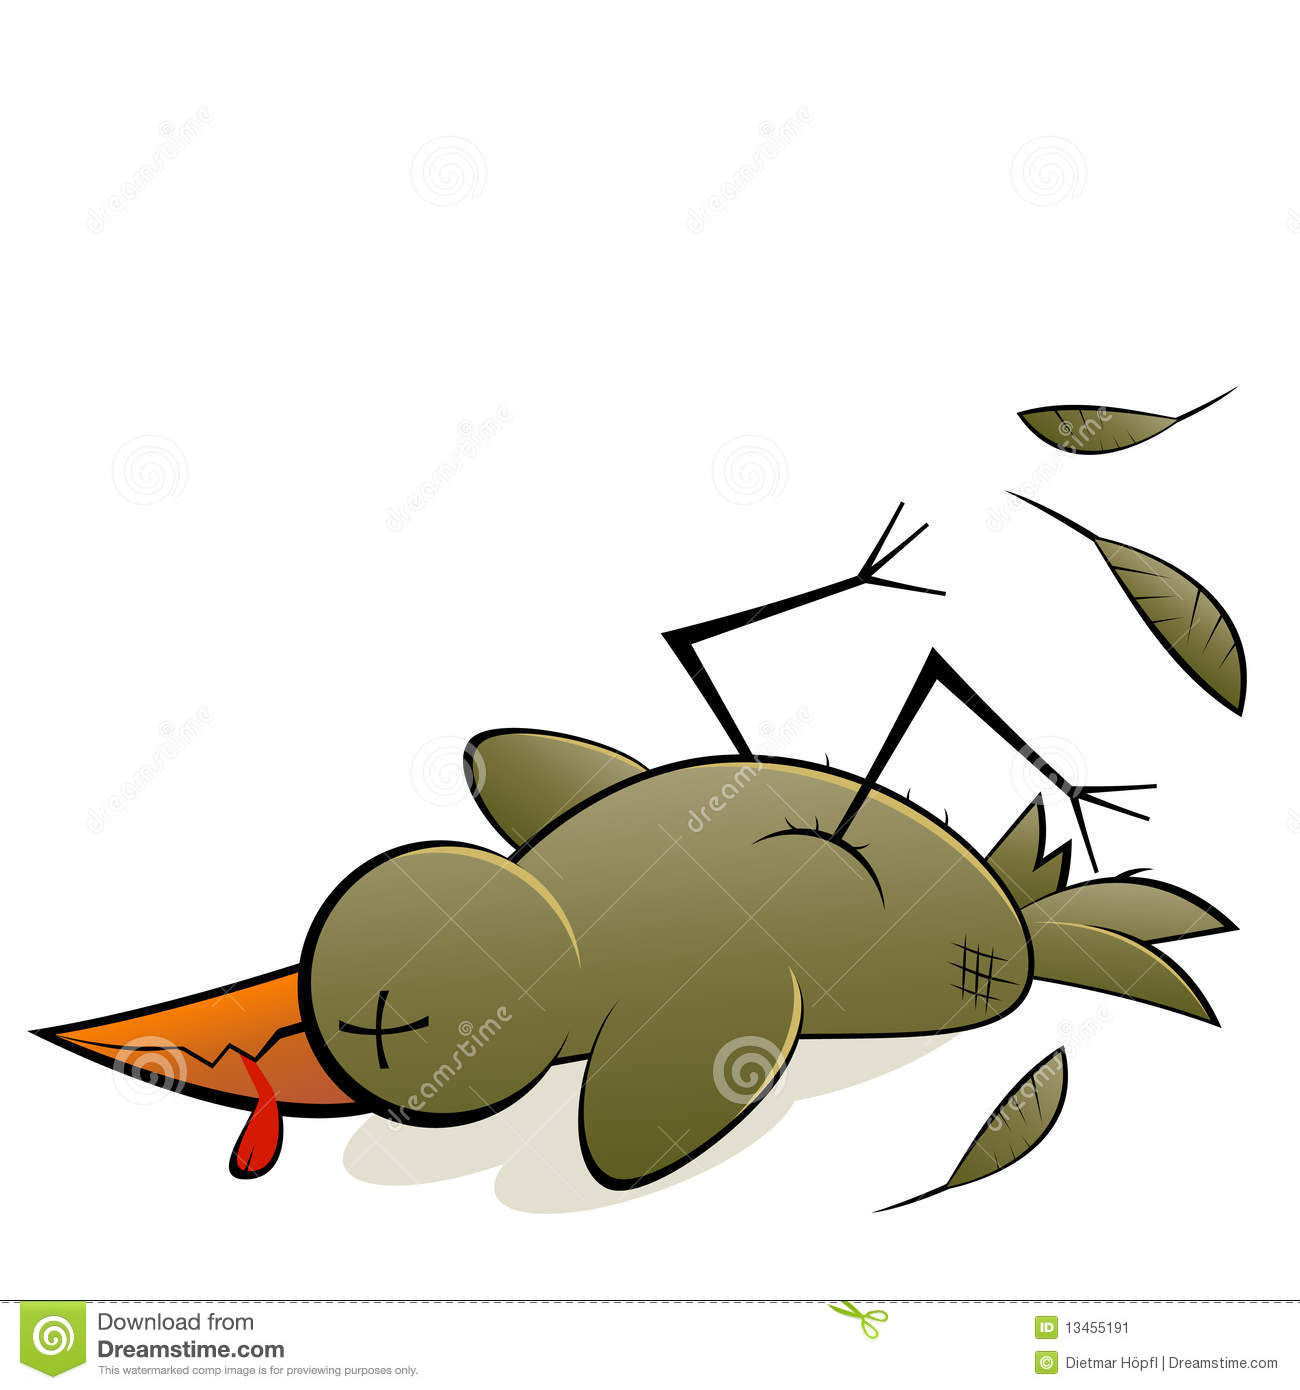 An illustrated cartoon of a dead bird, isolated on white background.